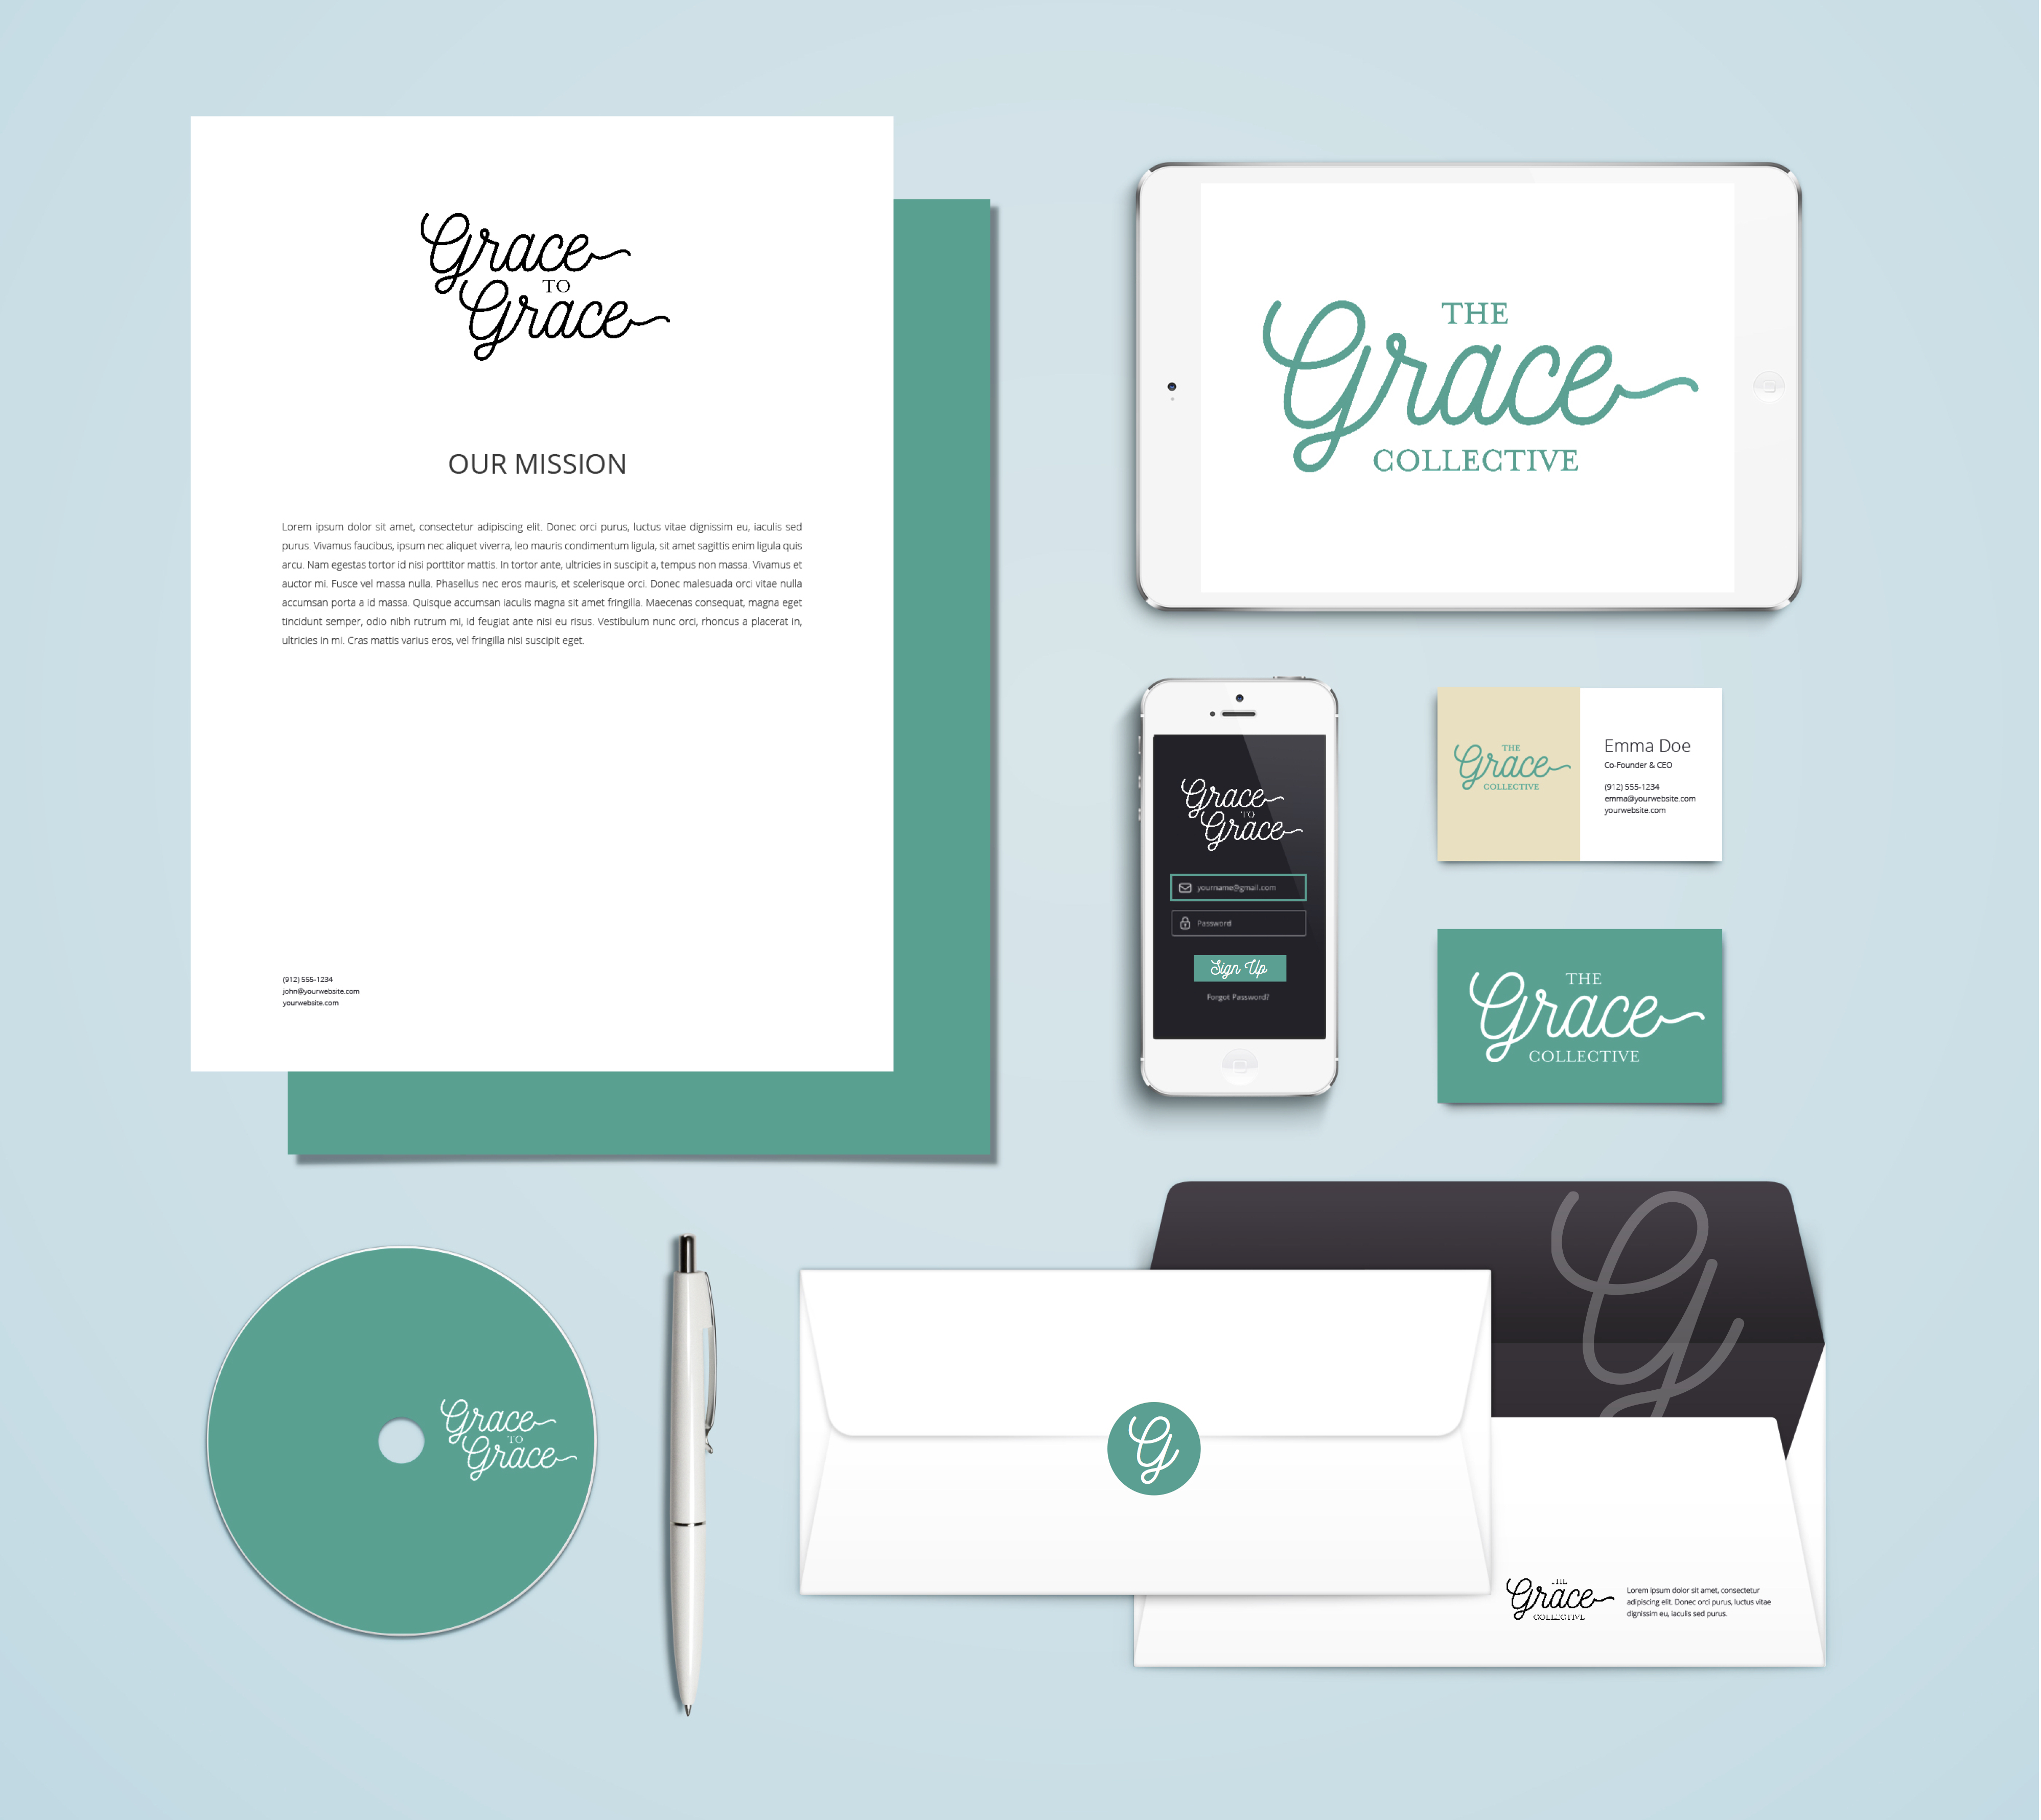 Evolve & Co Unveils Brand Identity for 'Grace'